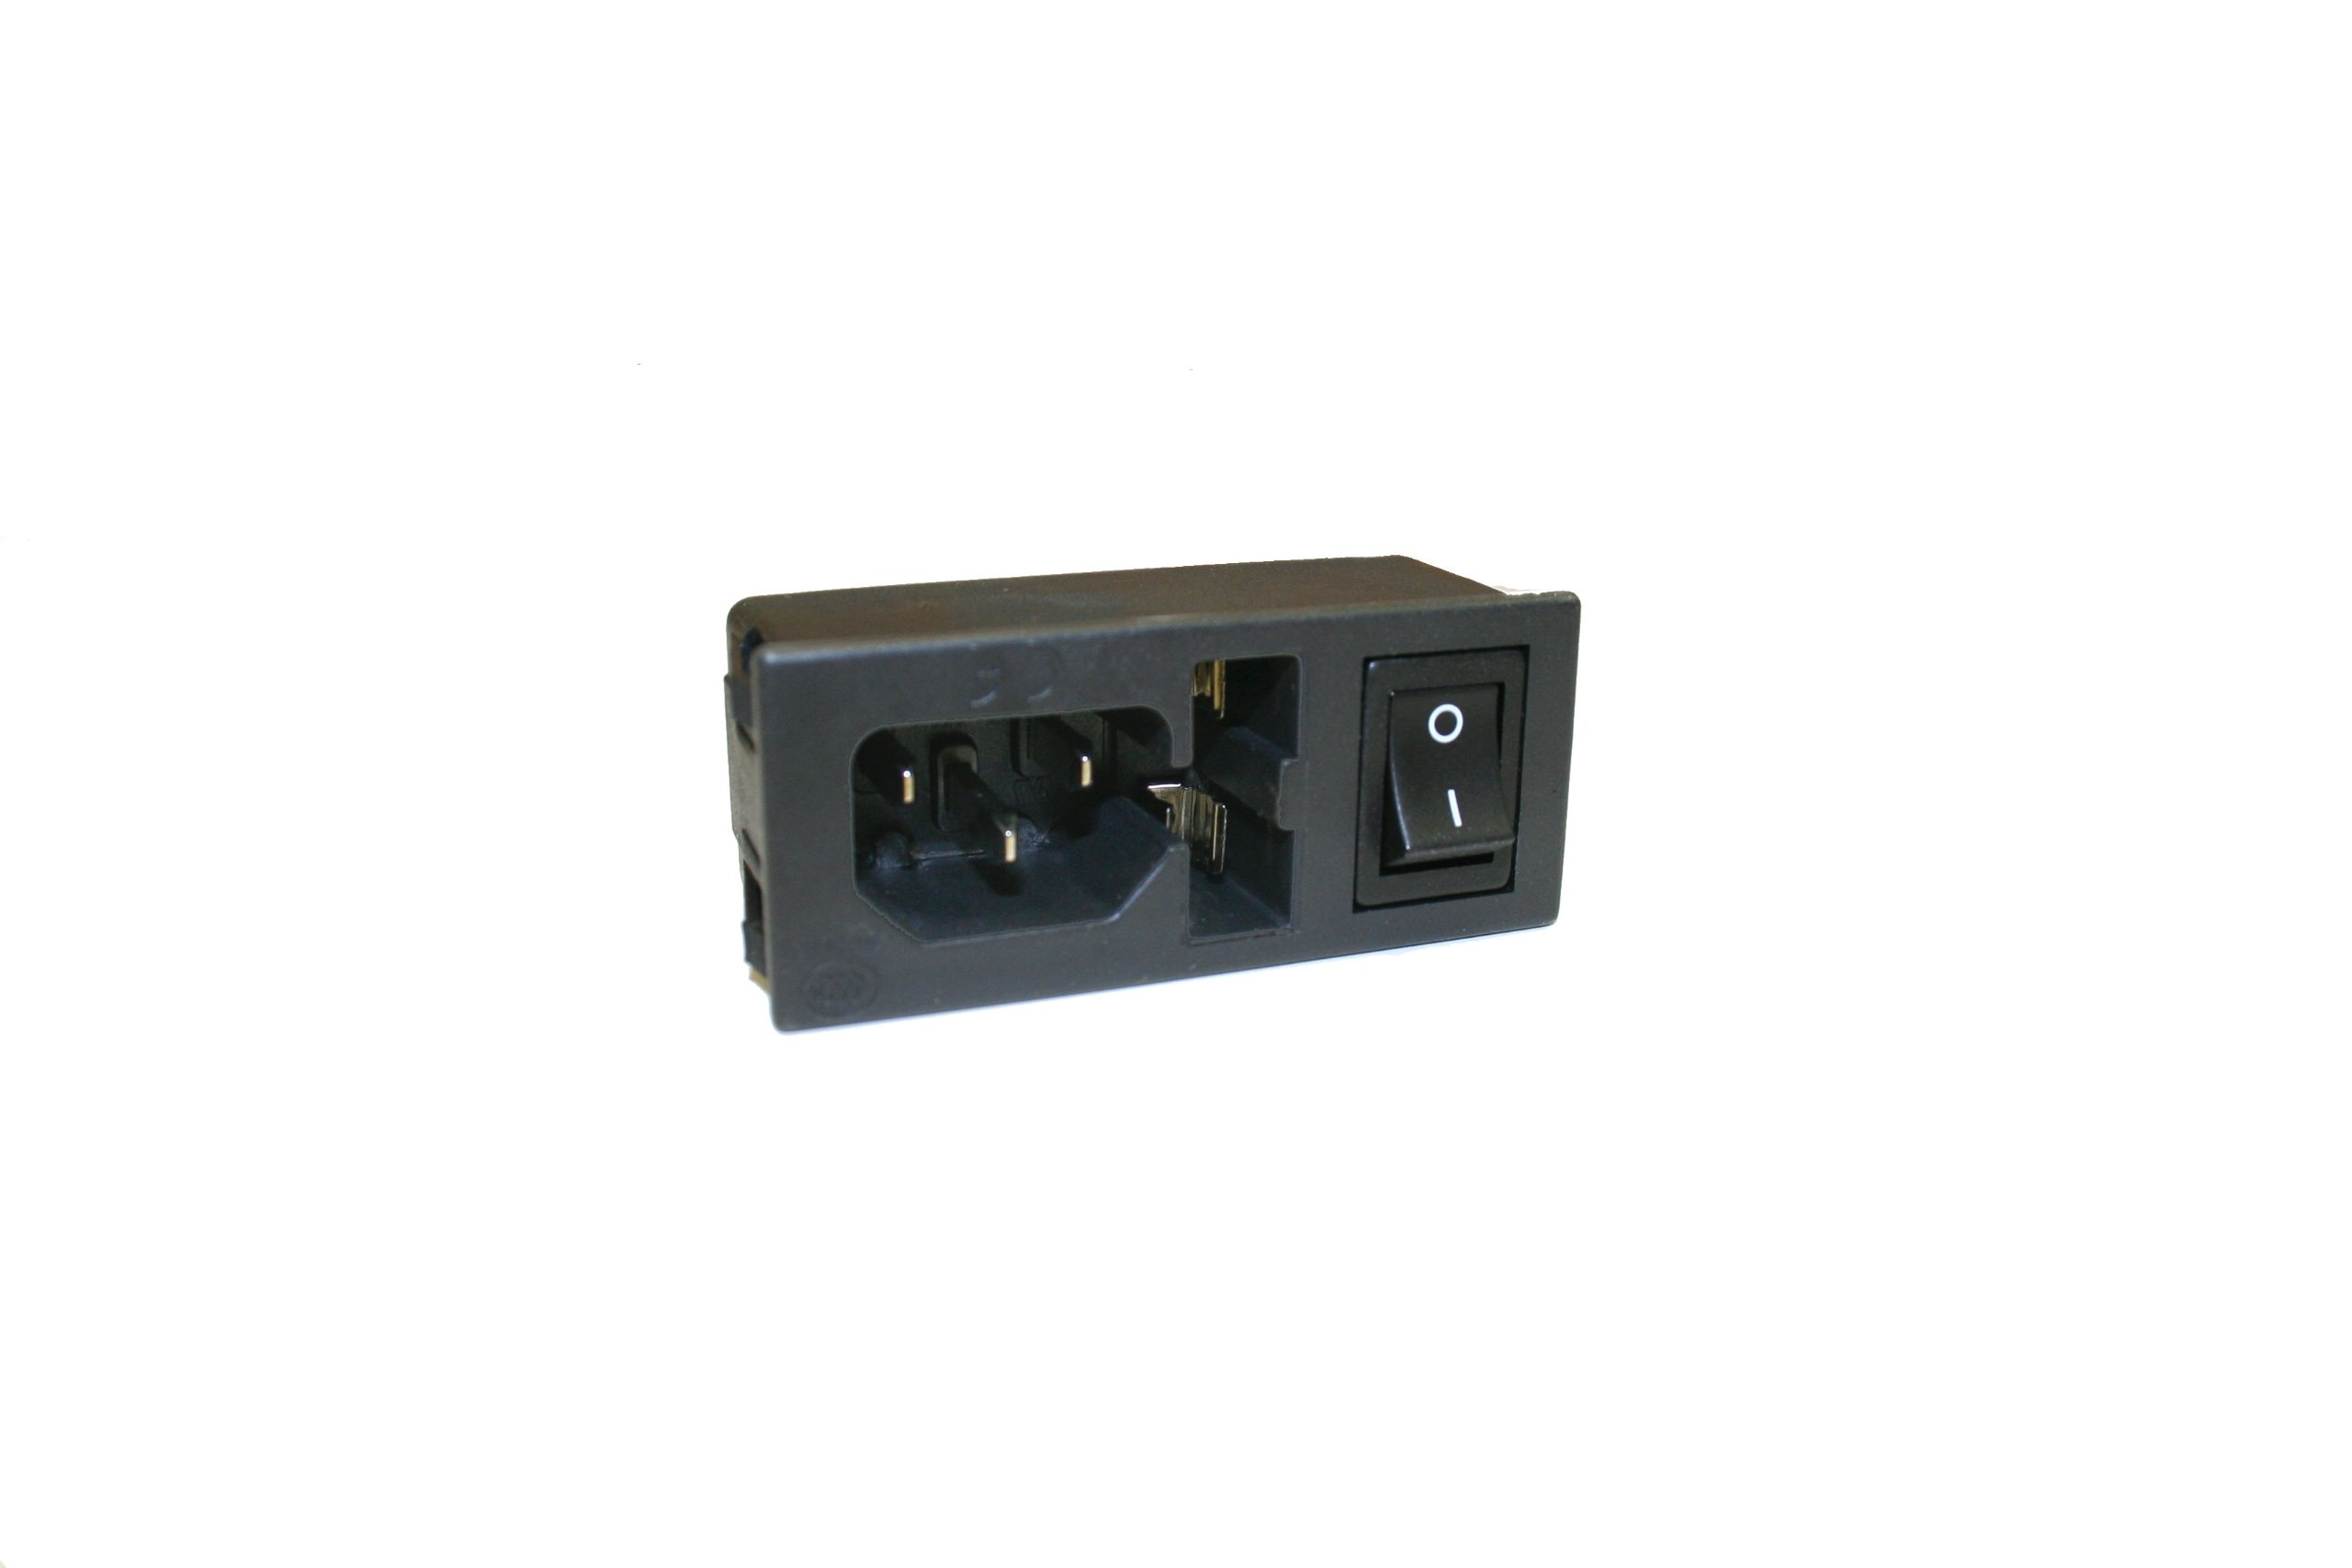 Interpower 83510160 Three Function Single Fused Power Entry Module, C14 Inlet, Single Fused, Switch, 1-2mm Panel Thickness, 10A/6A Current Rating, 250VAC Voltage Rating by Interpower